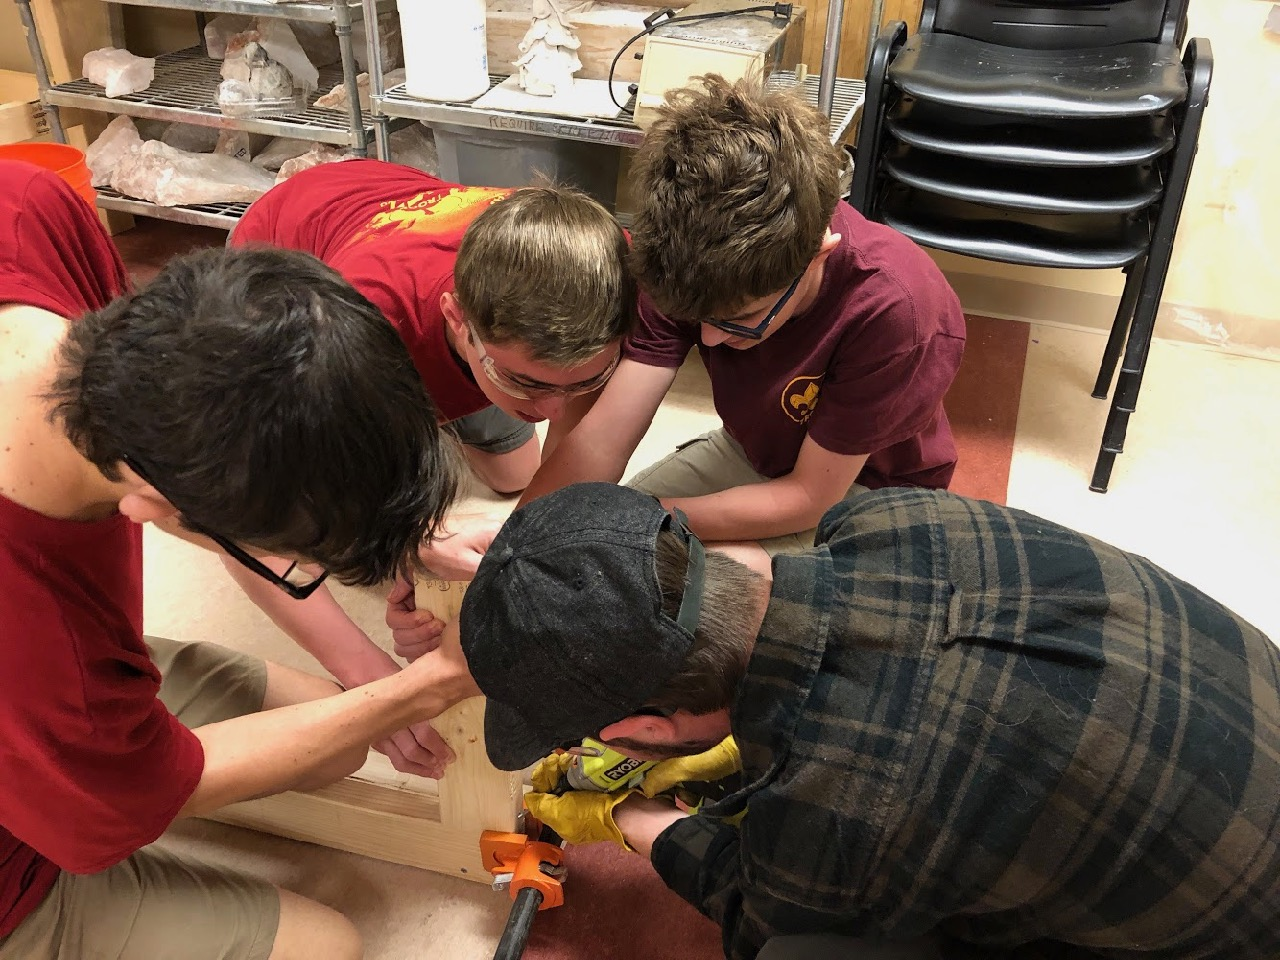 Scott, Stephan, Lucas and Jonathan work together on the floor to attach a leg to the top of one of the new benches